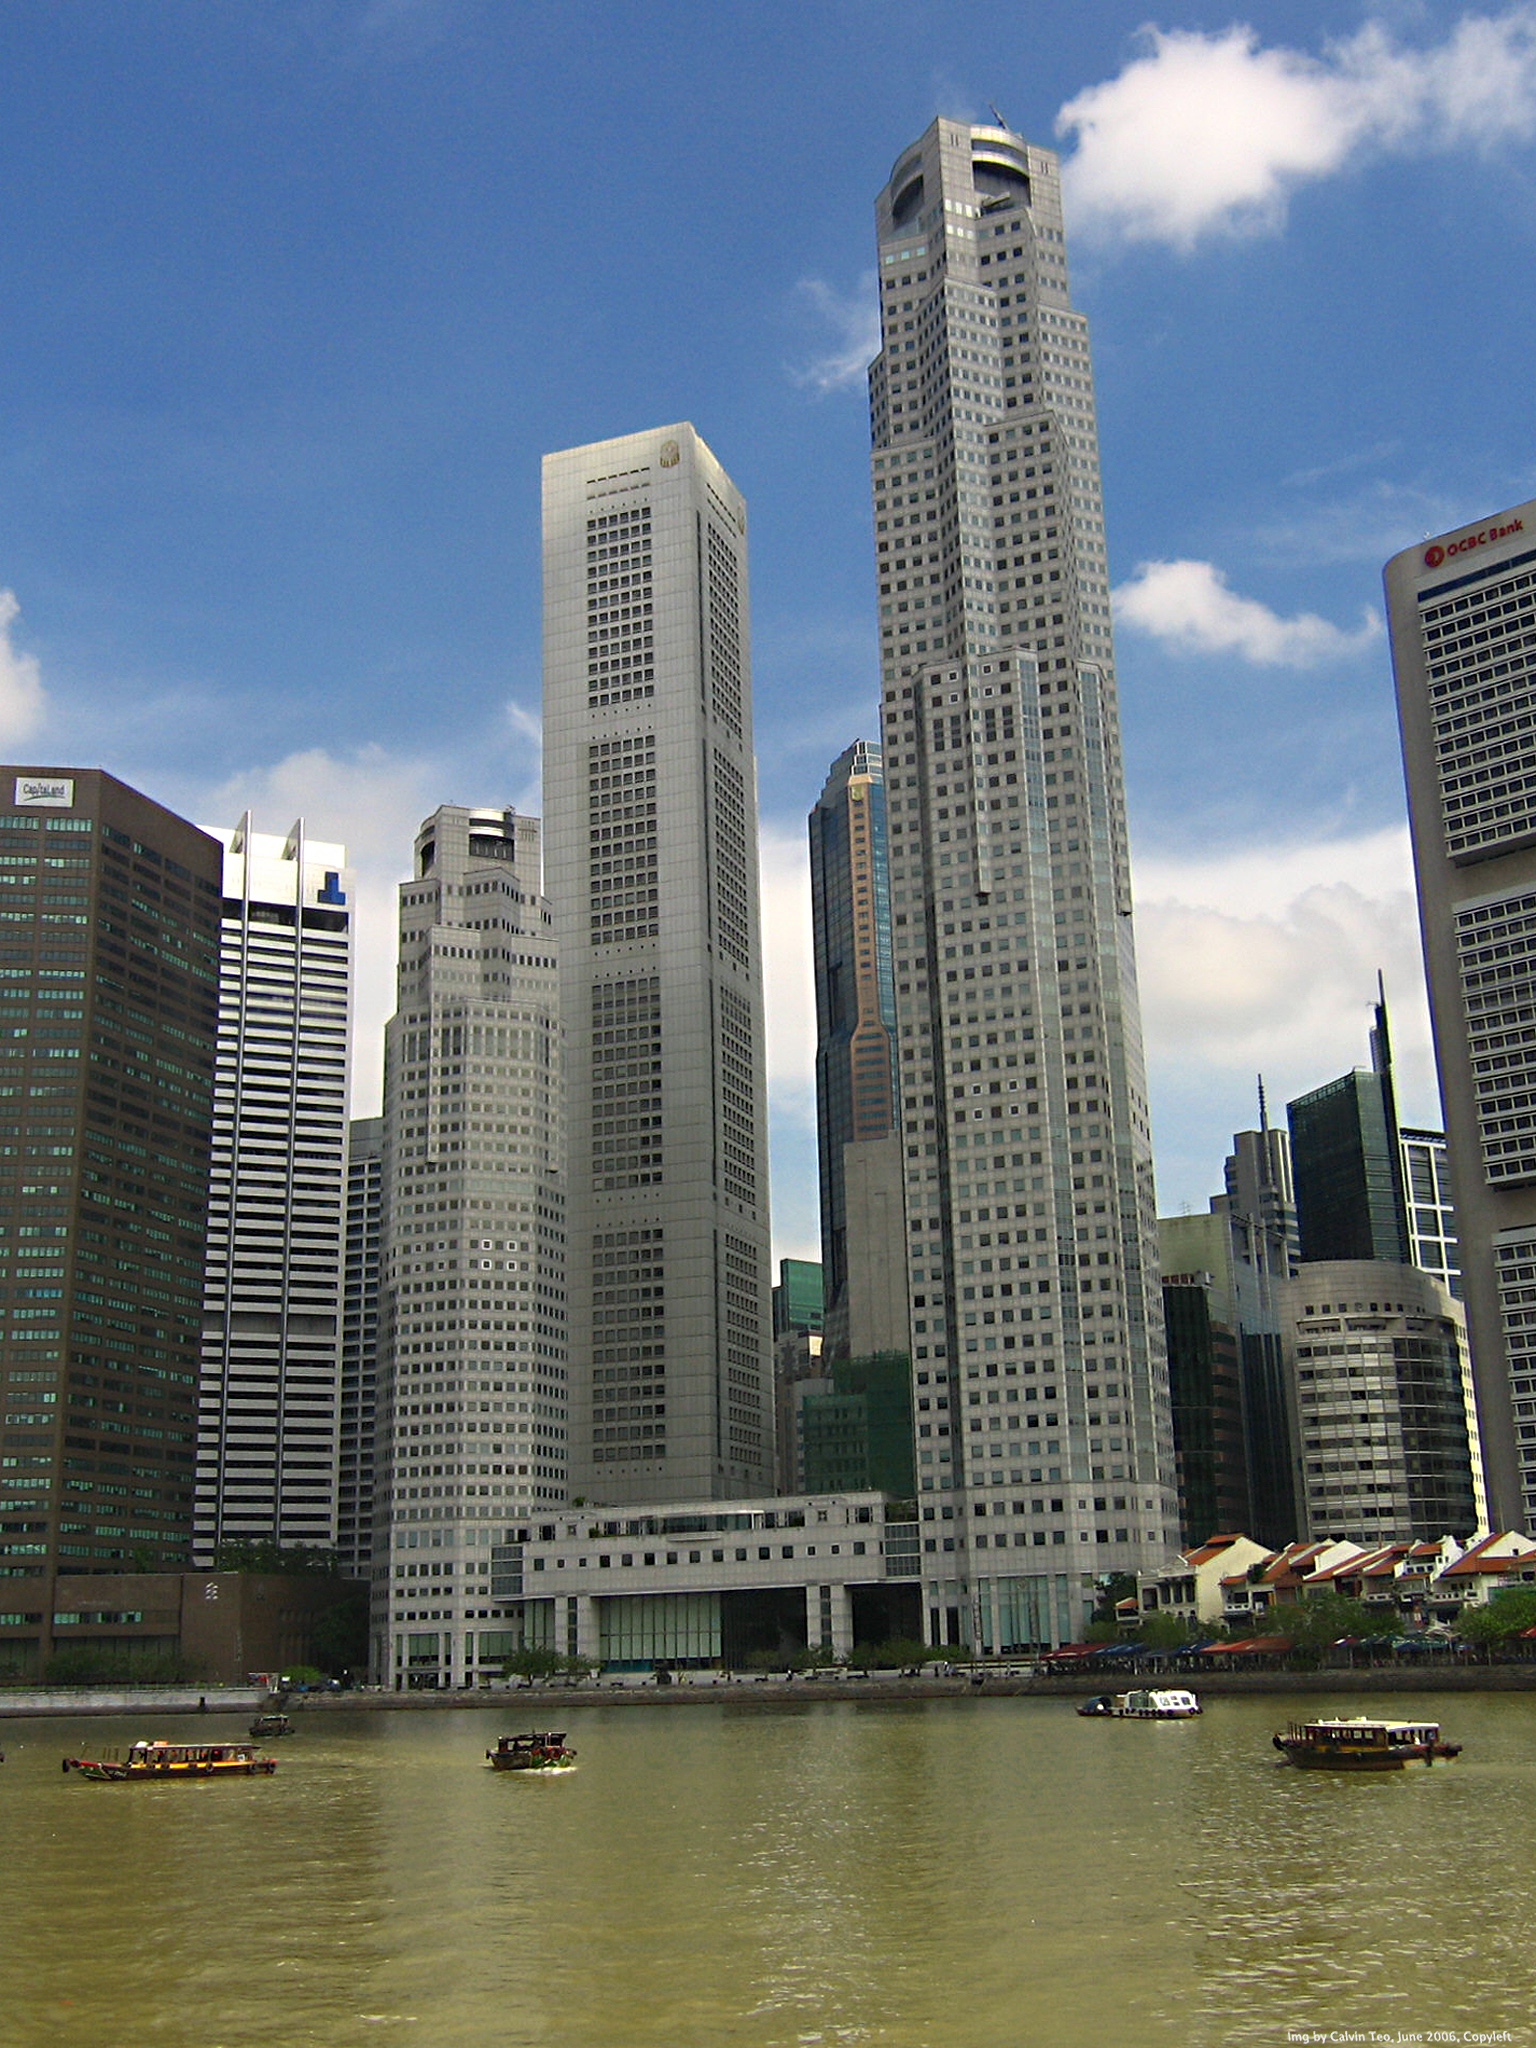 File:Singapore River overlooking Raffles Place.jpg - Wikipedia ...